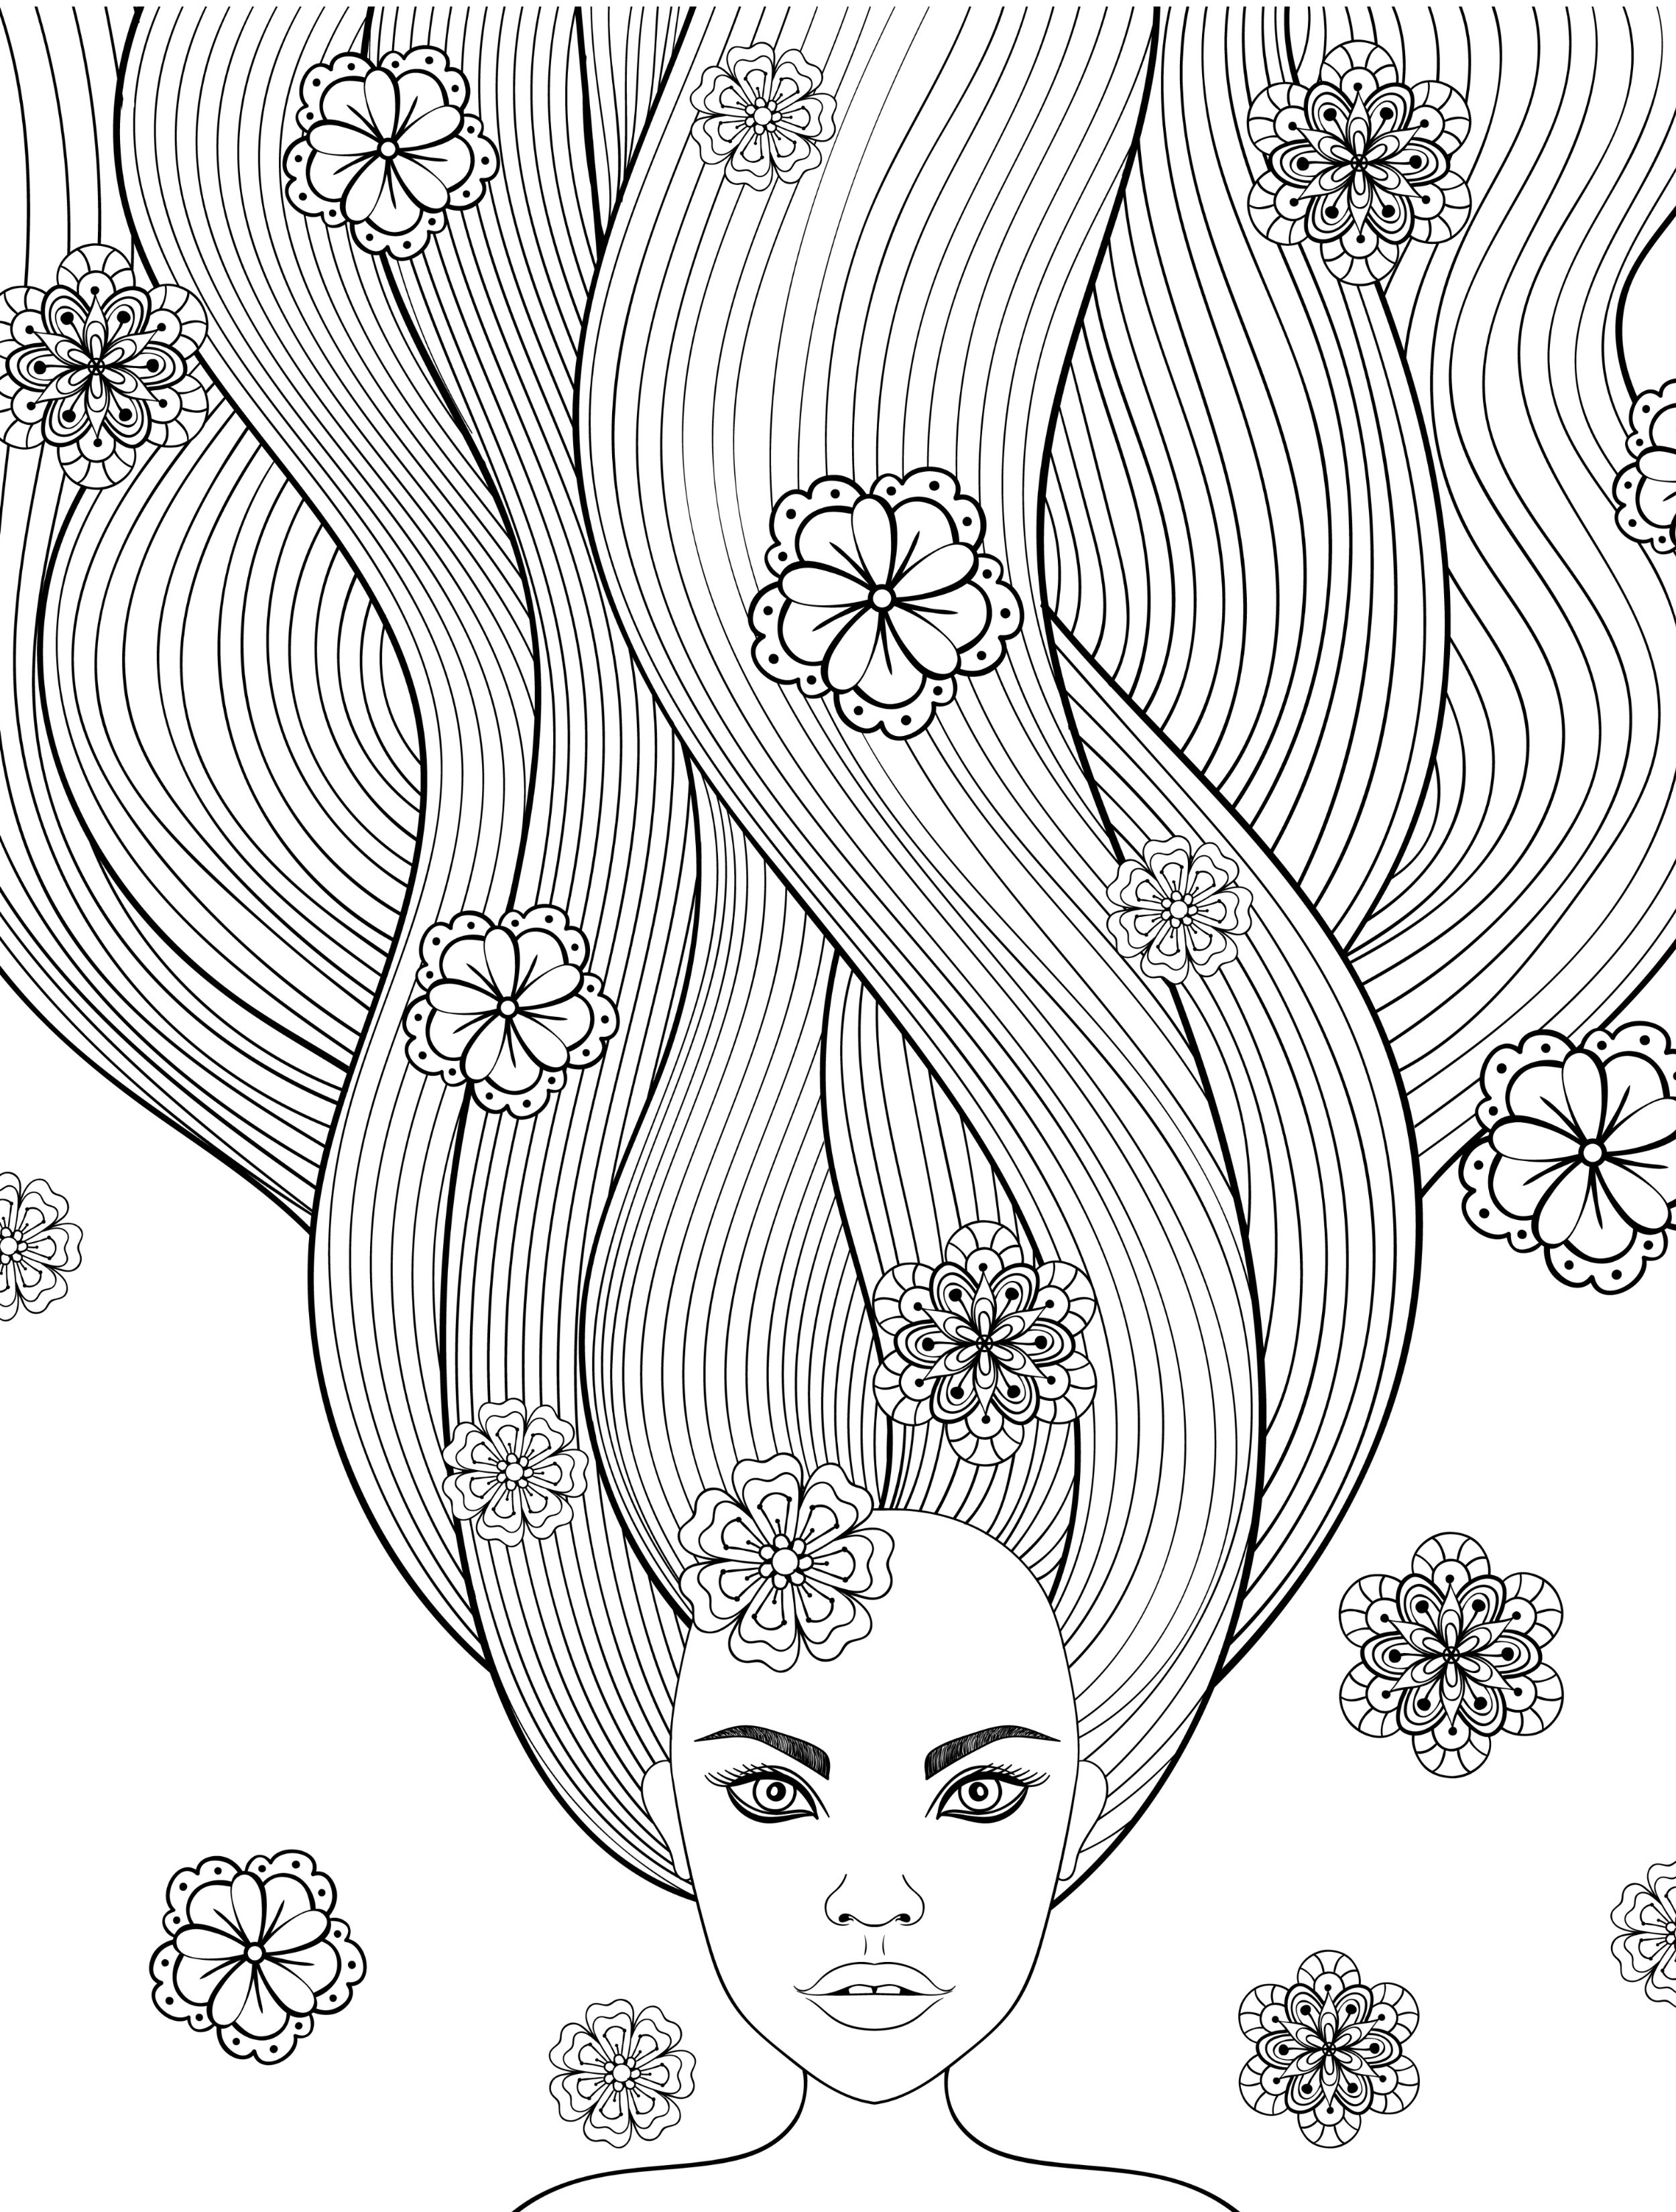 coloring pages hair - 8